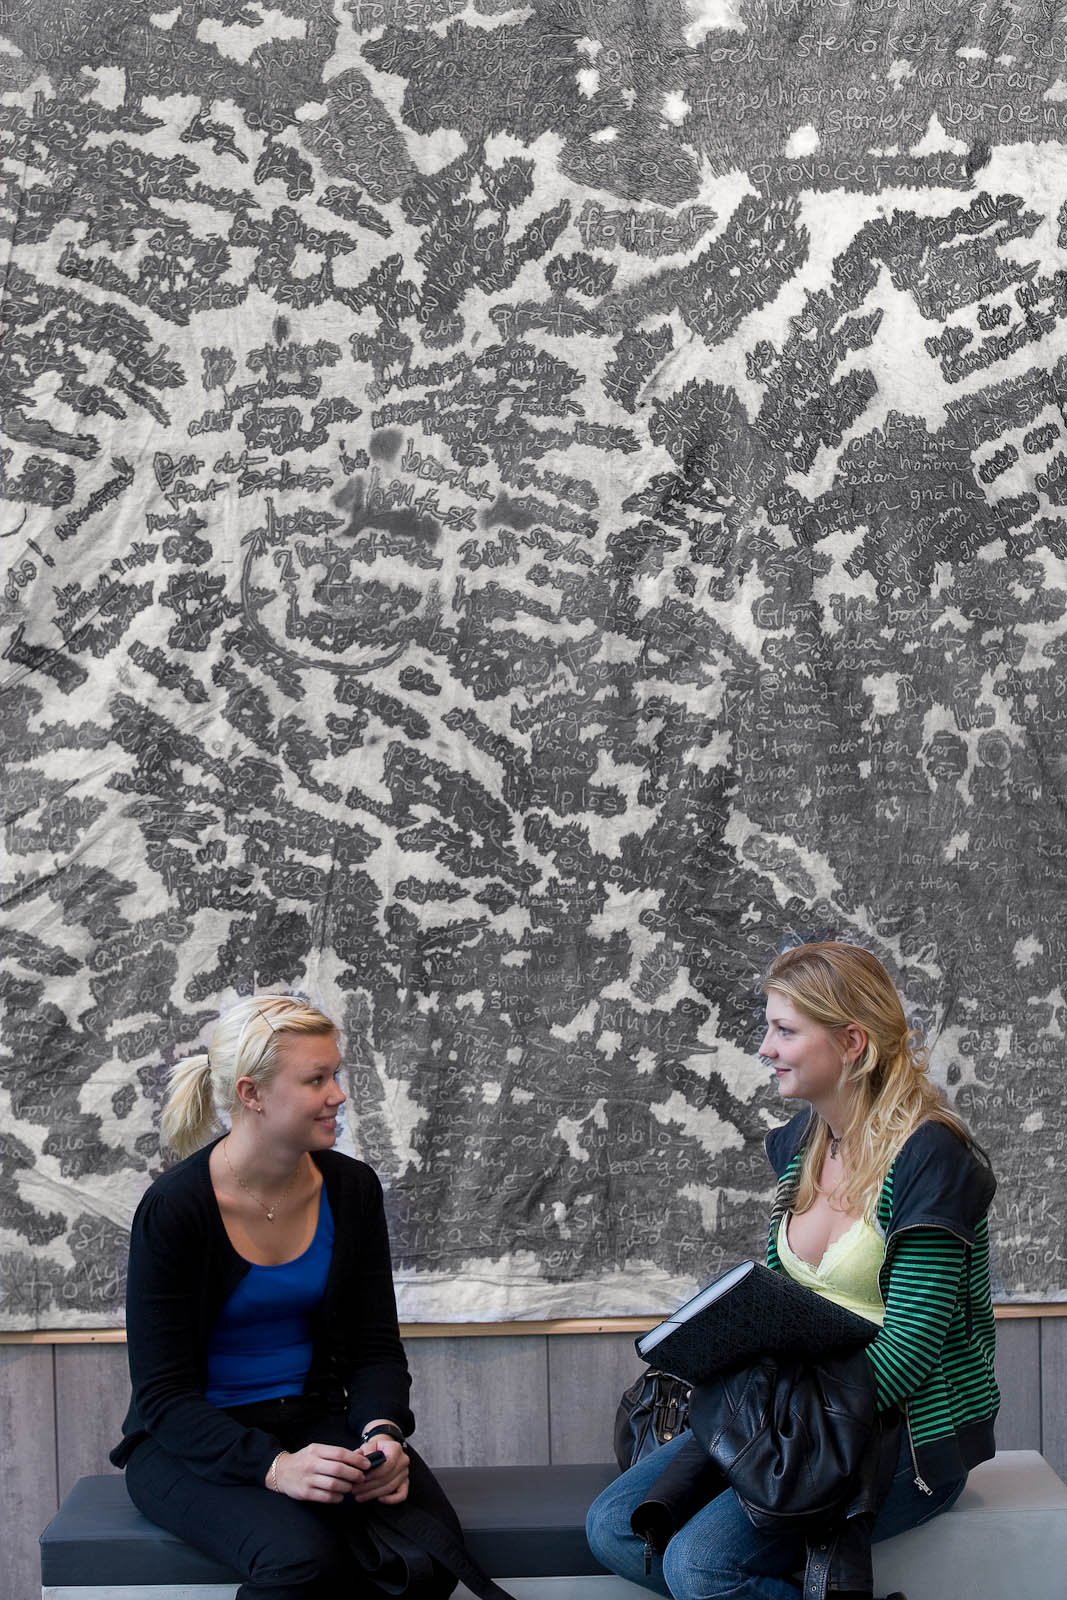 Two women sitting on a bench in front of the artwork.